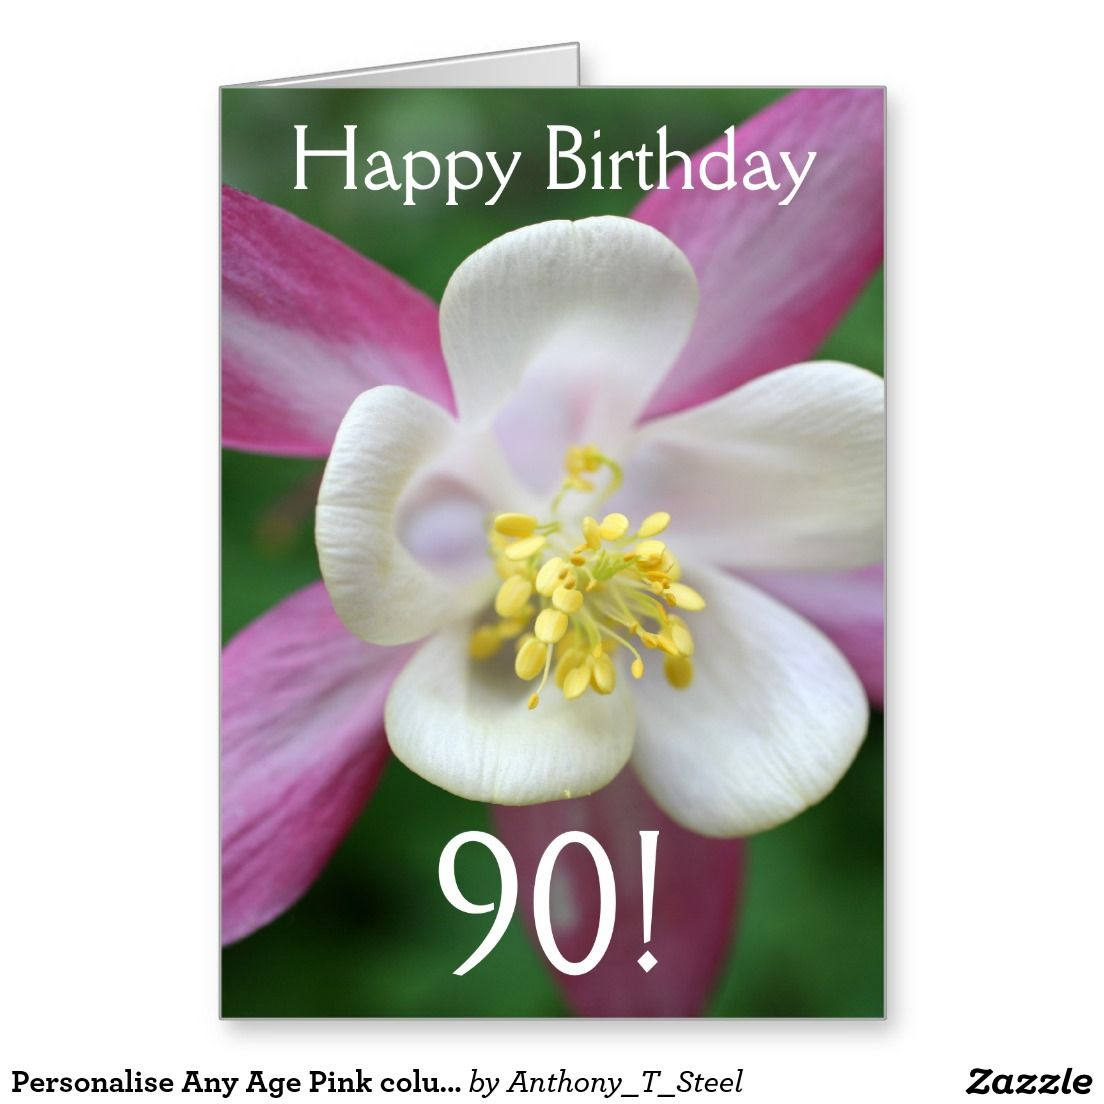 Personalise Any Age Pink Columbine Flower Birthday Greeting Card A